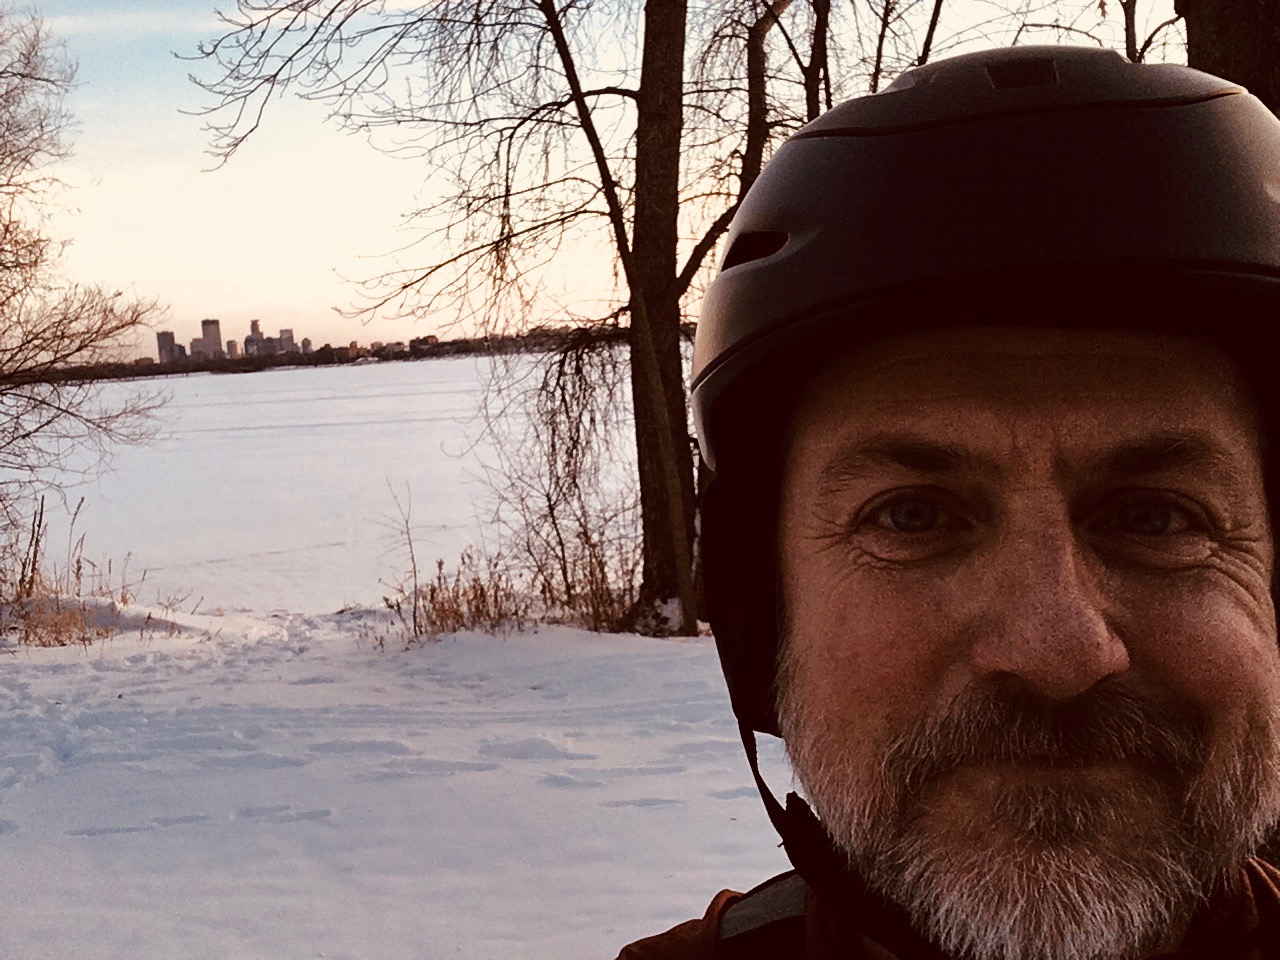 For my last morning commute I took a ride around the lakes. Hard to beat.